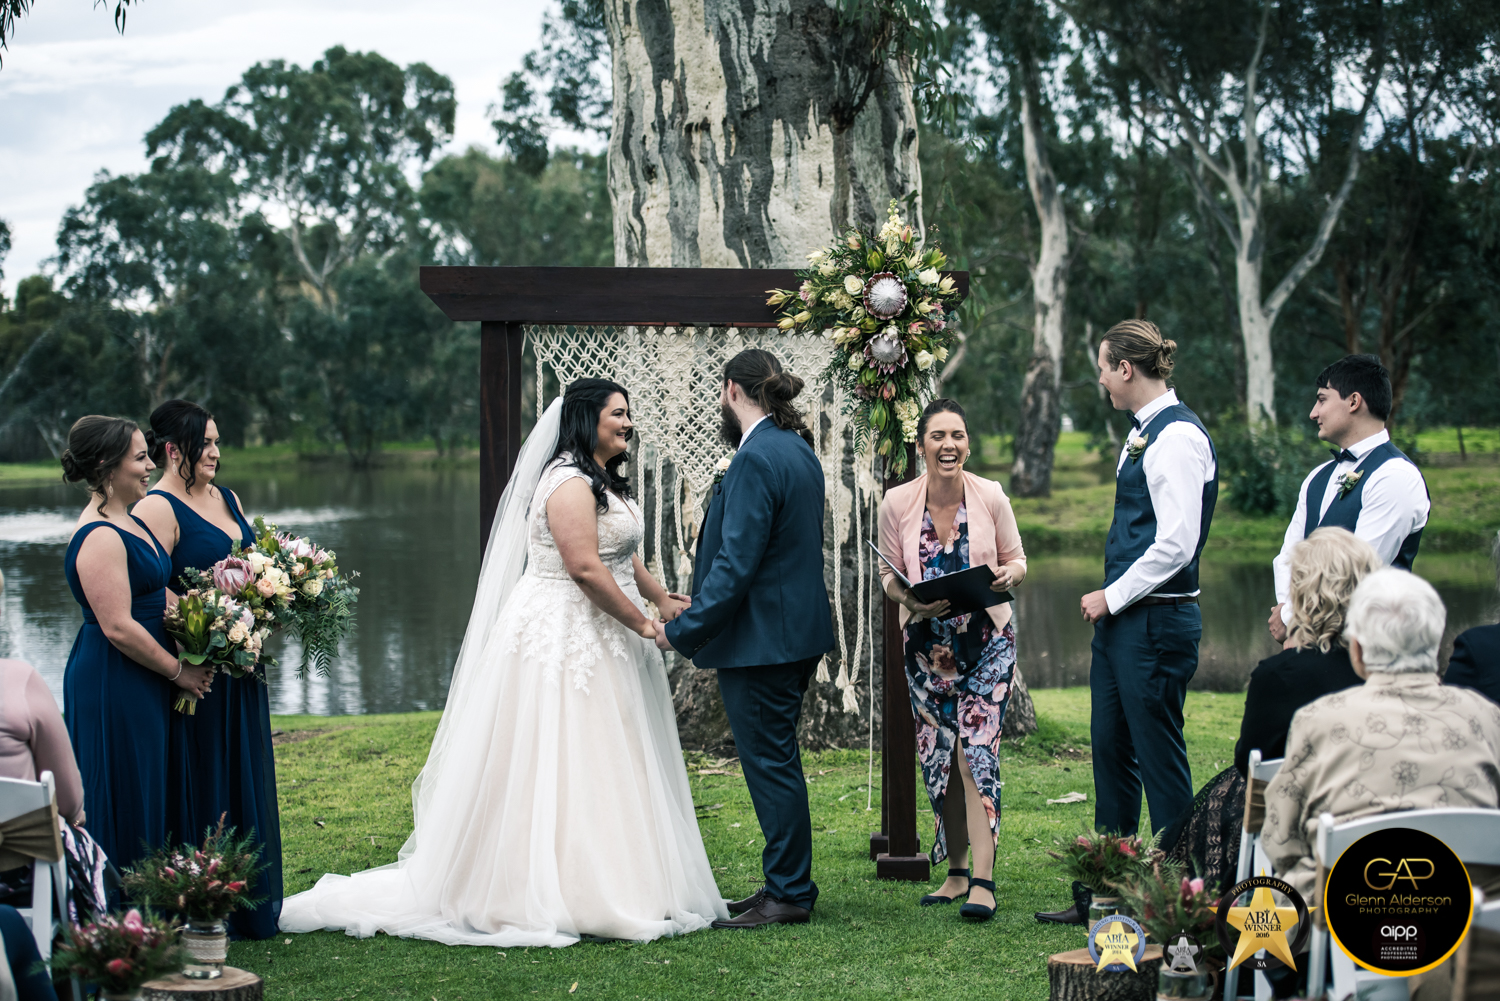 Karlee & Lachlan 01092017 WM (4 of 12)